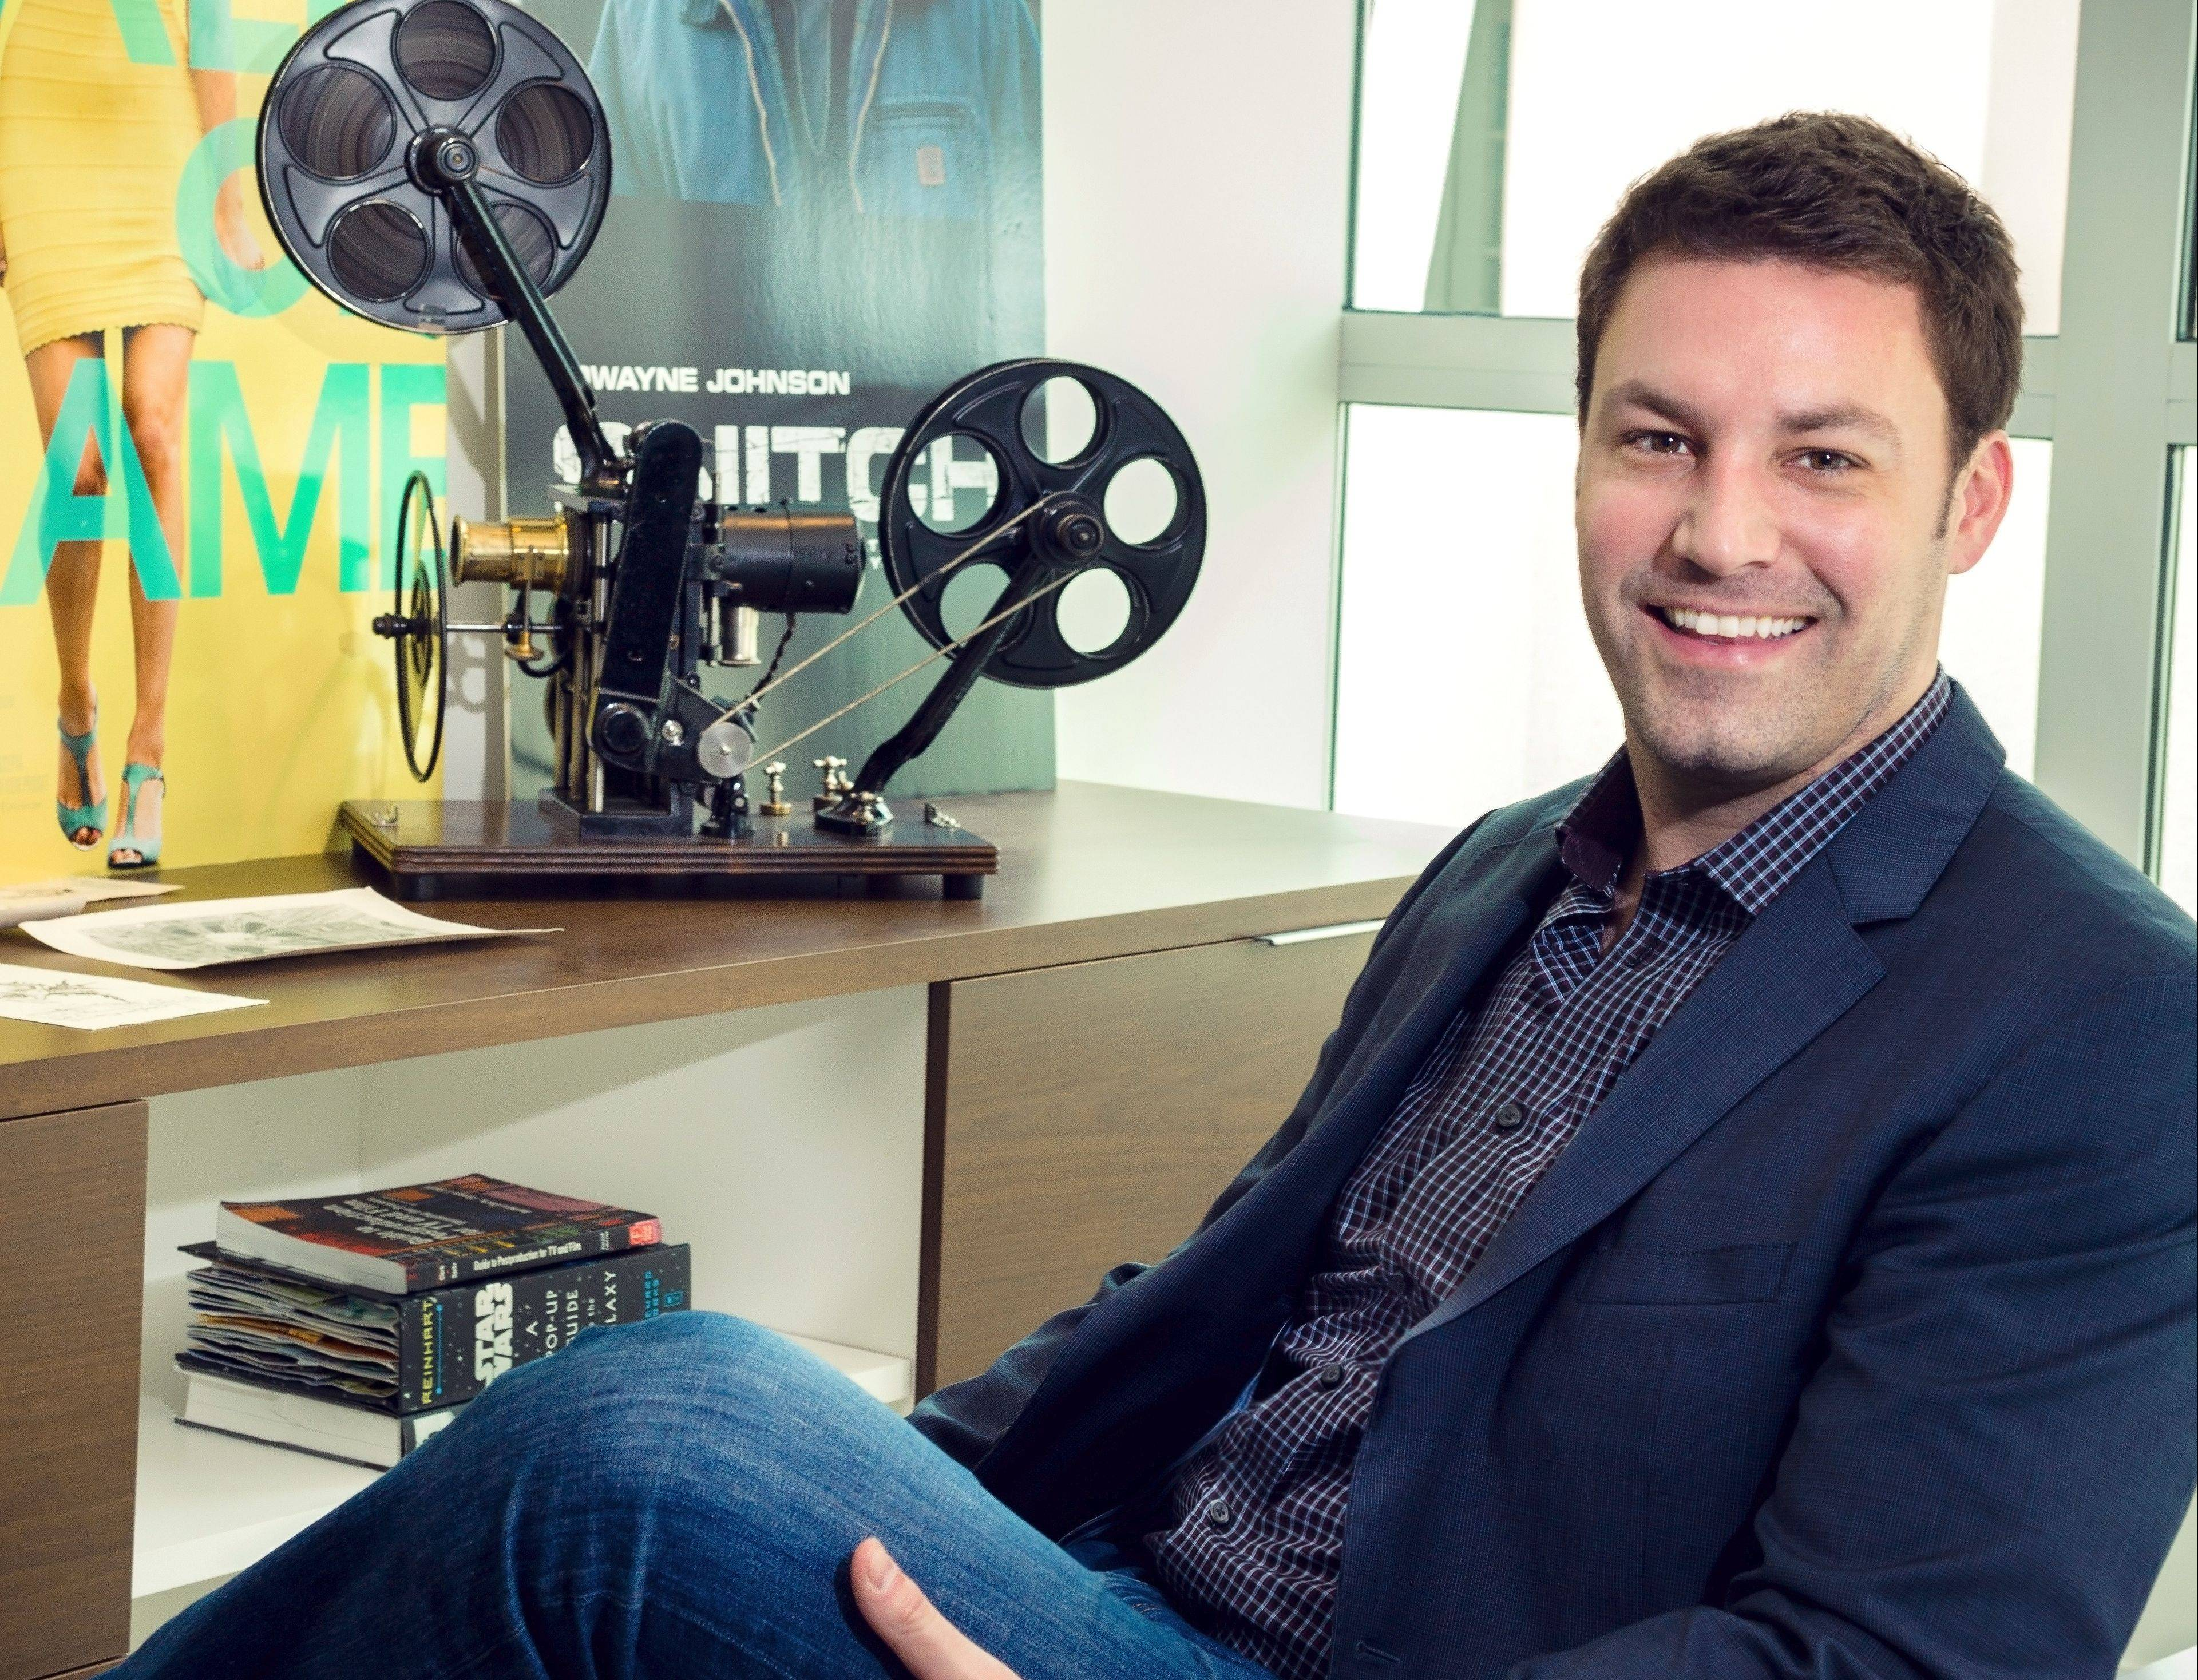 Bill Wohlken grew up in Hoffman Estates and is a vice president of post production at Focus Features in Los Angeles.